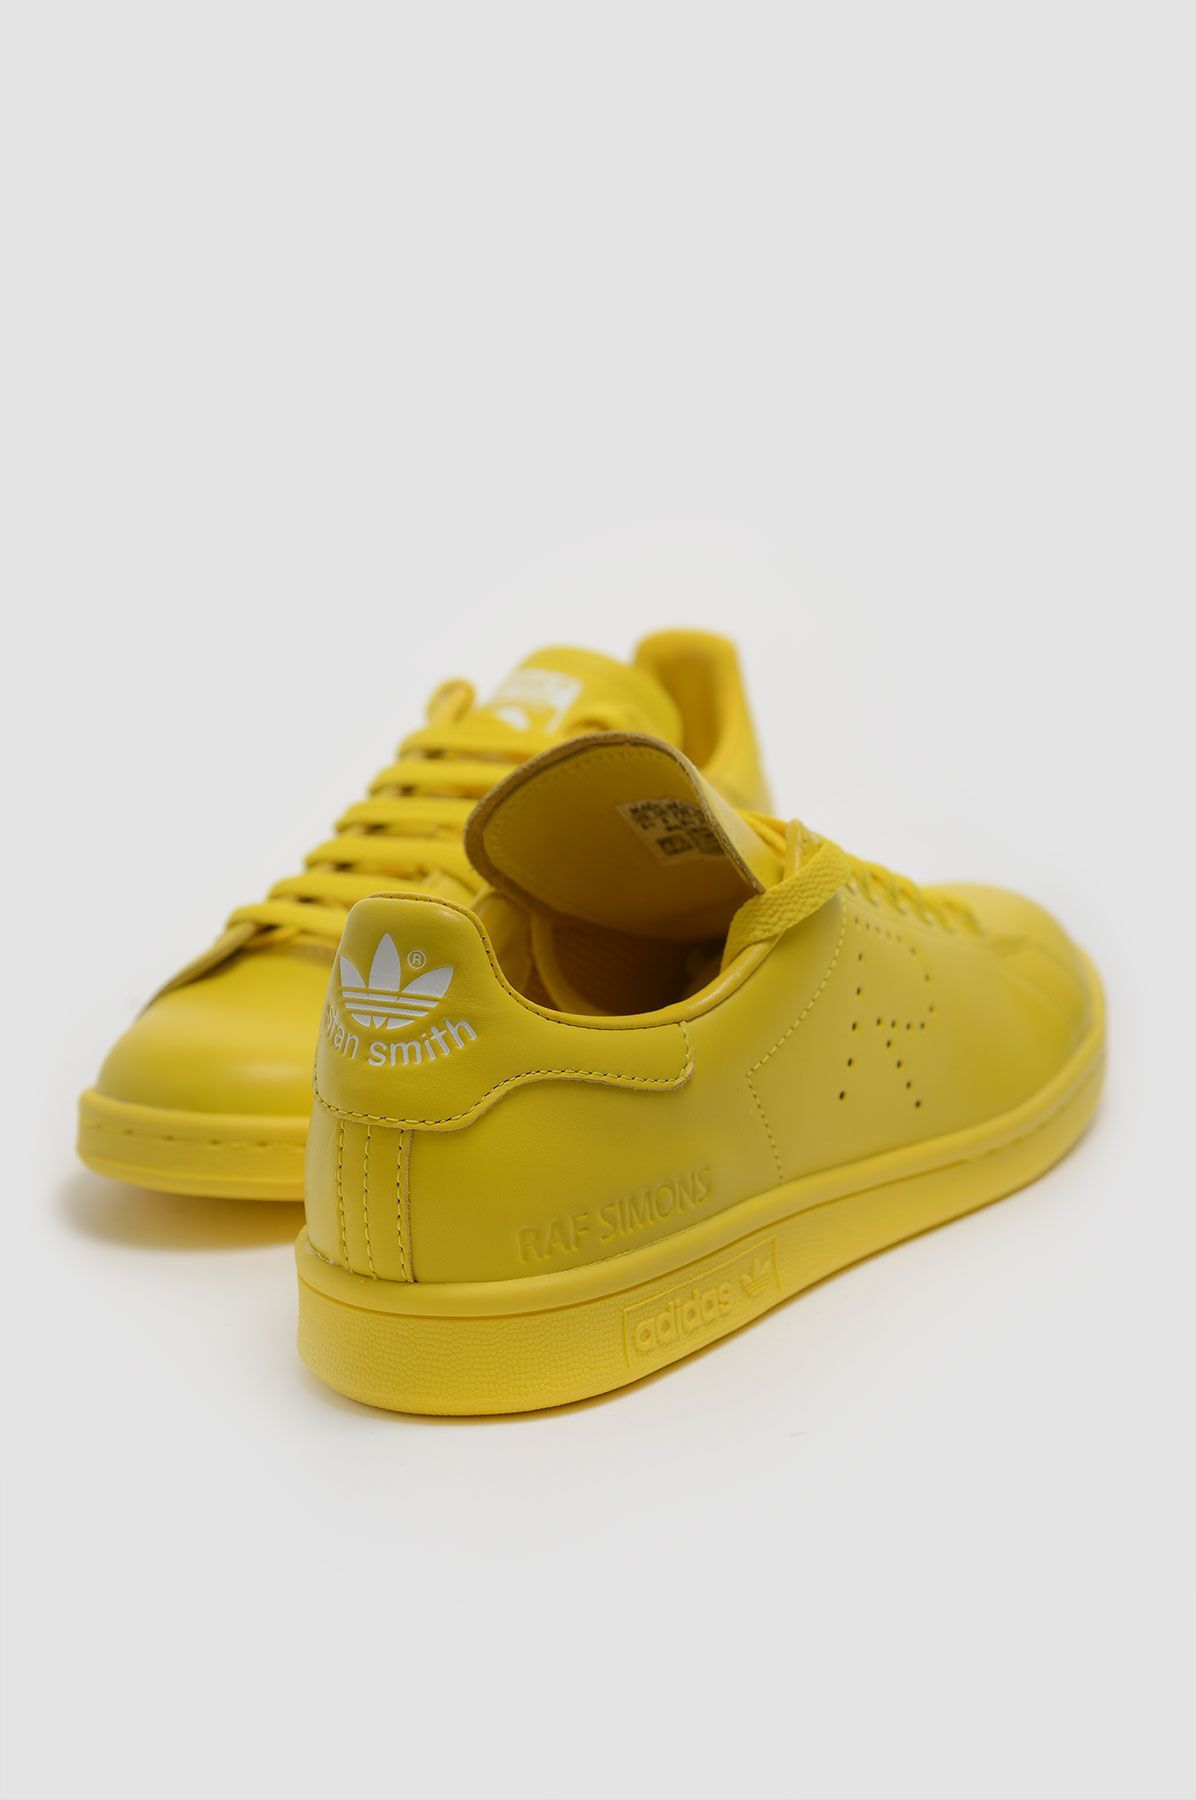 quality design 1b7bc 77fd1 ADIDAS X RAF SIMONS Stan Smith Yellow Sneakers